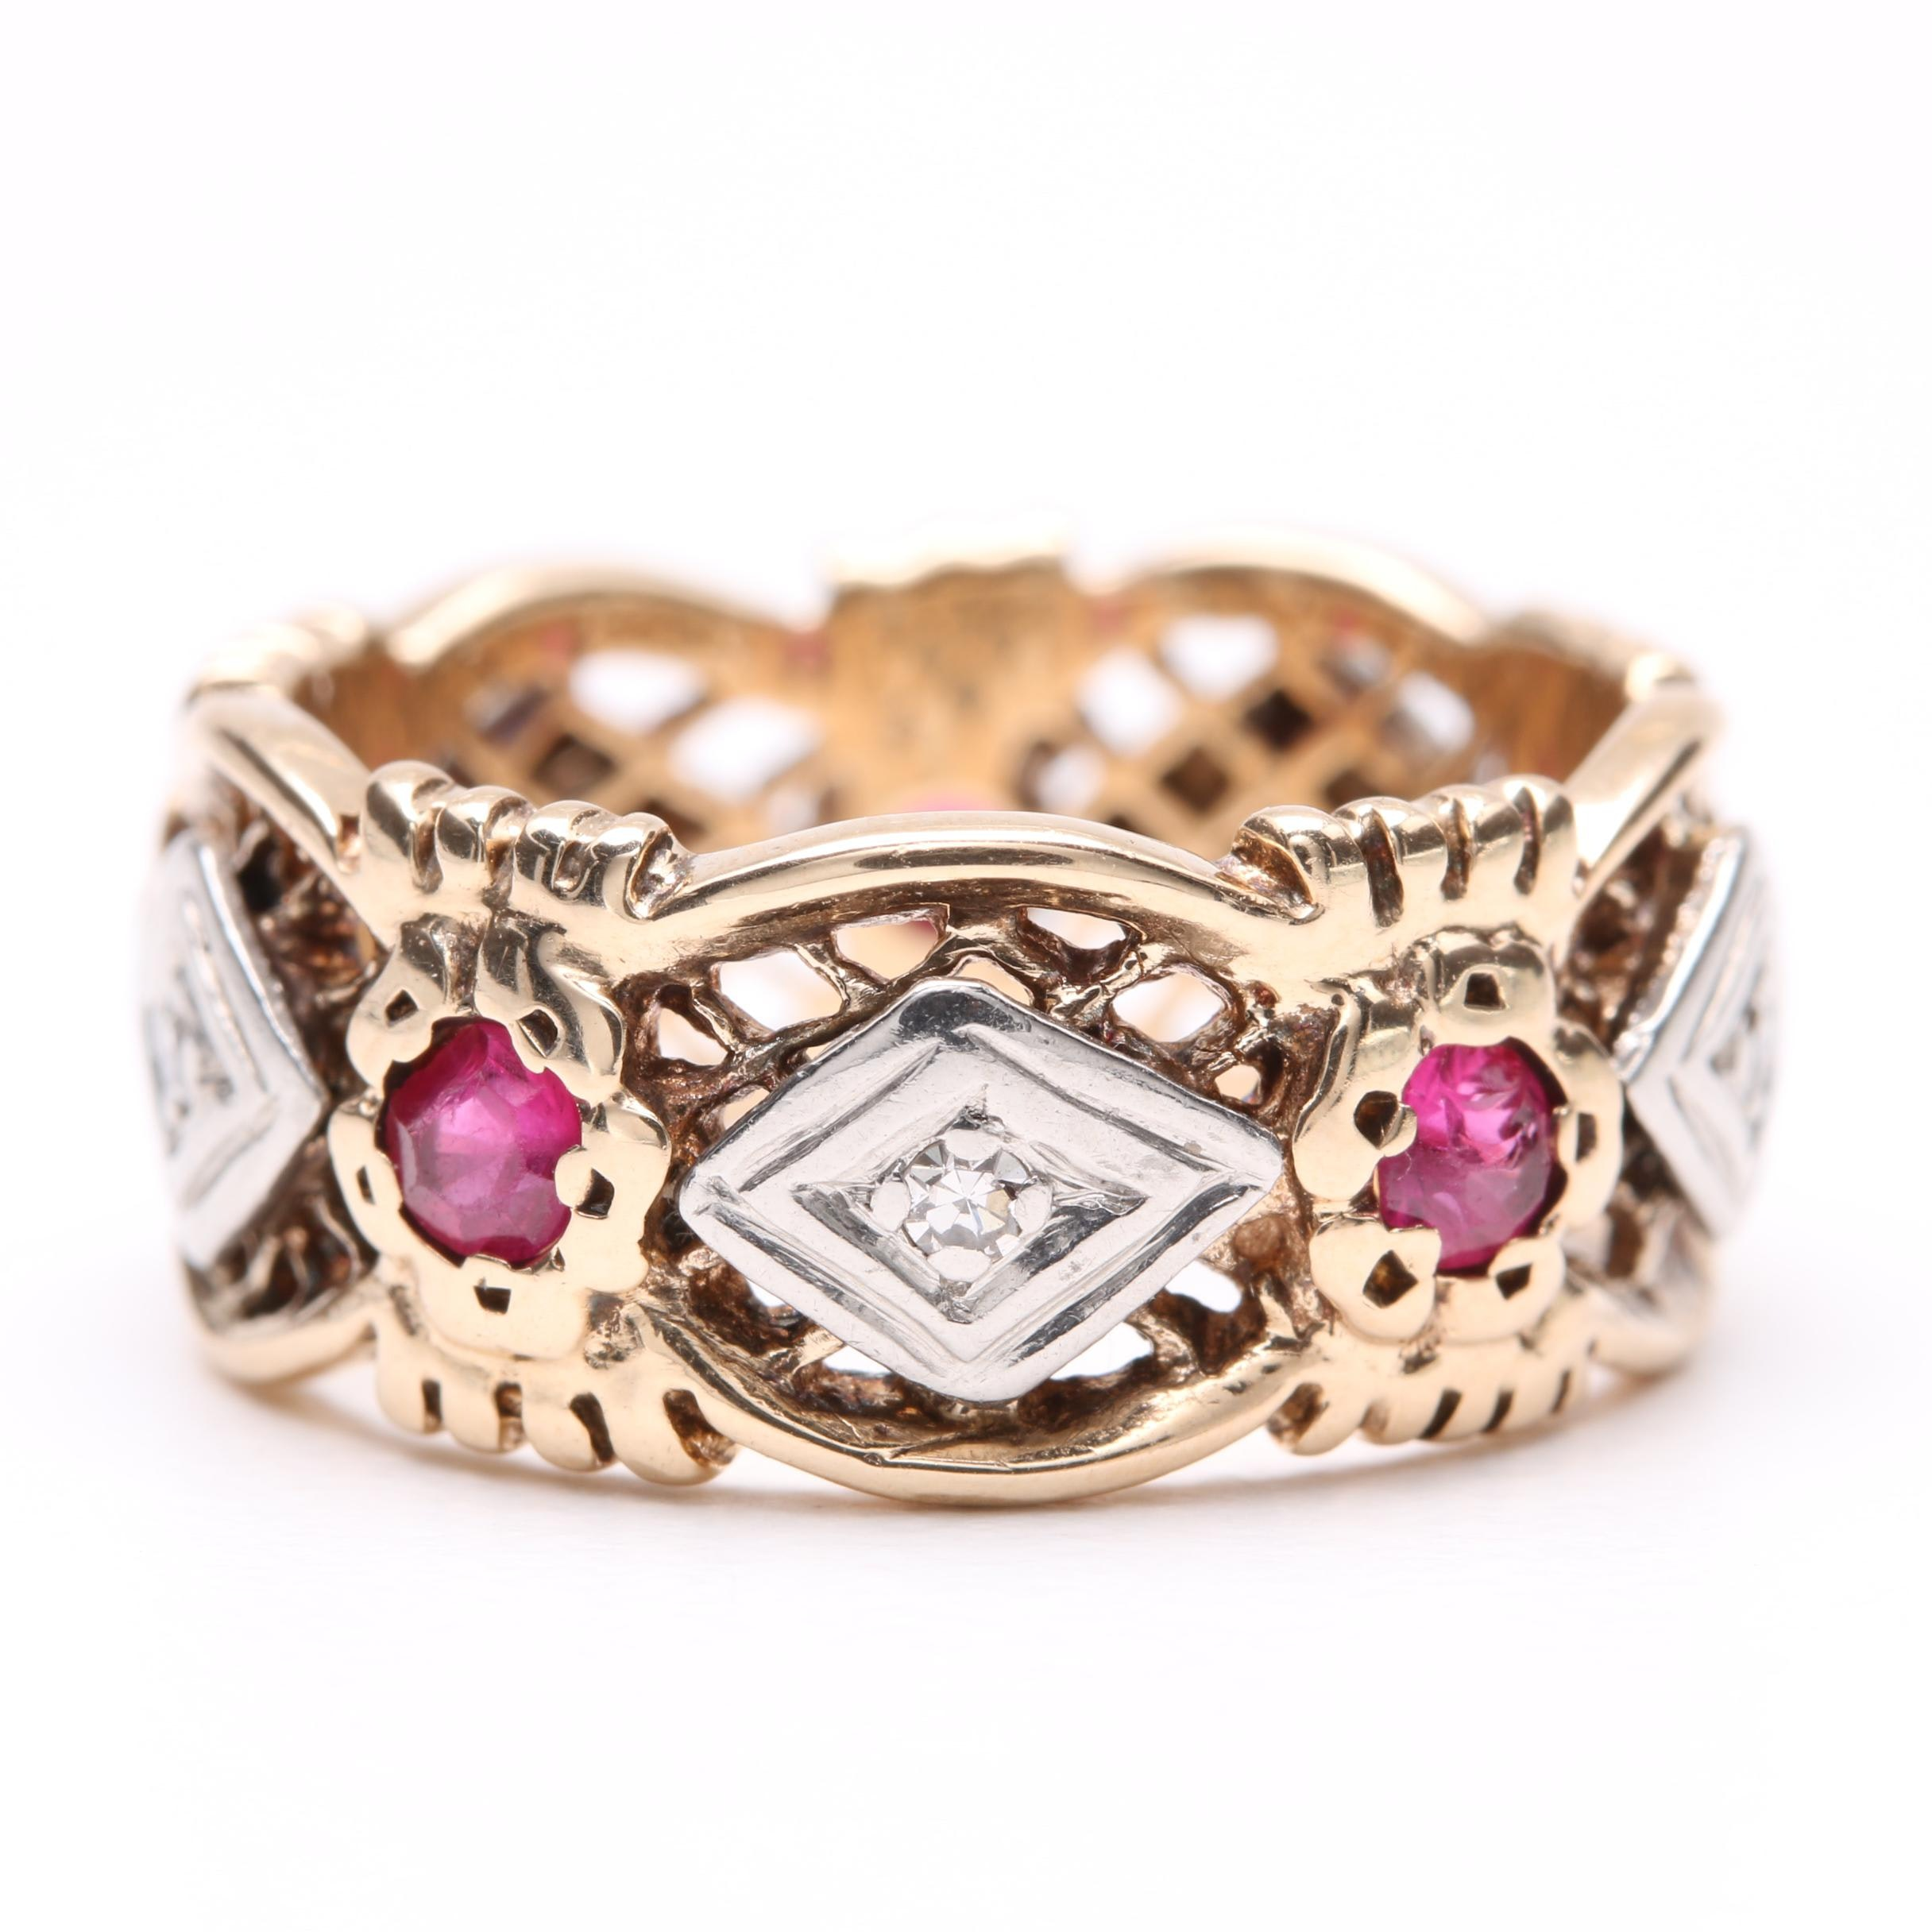 Vintage 14K Yellow Gold Synthetic Ruby and Diamond Ring with Palladium Accents